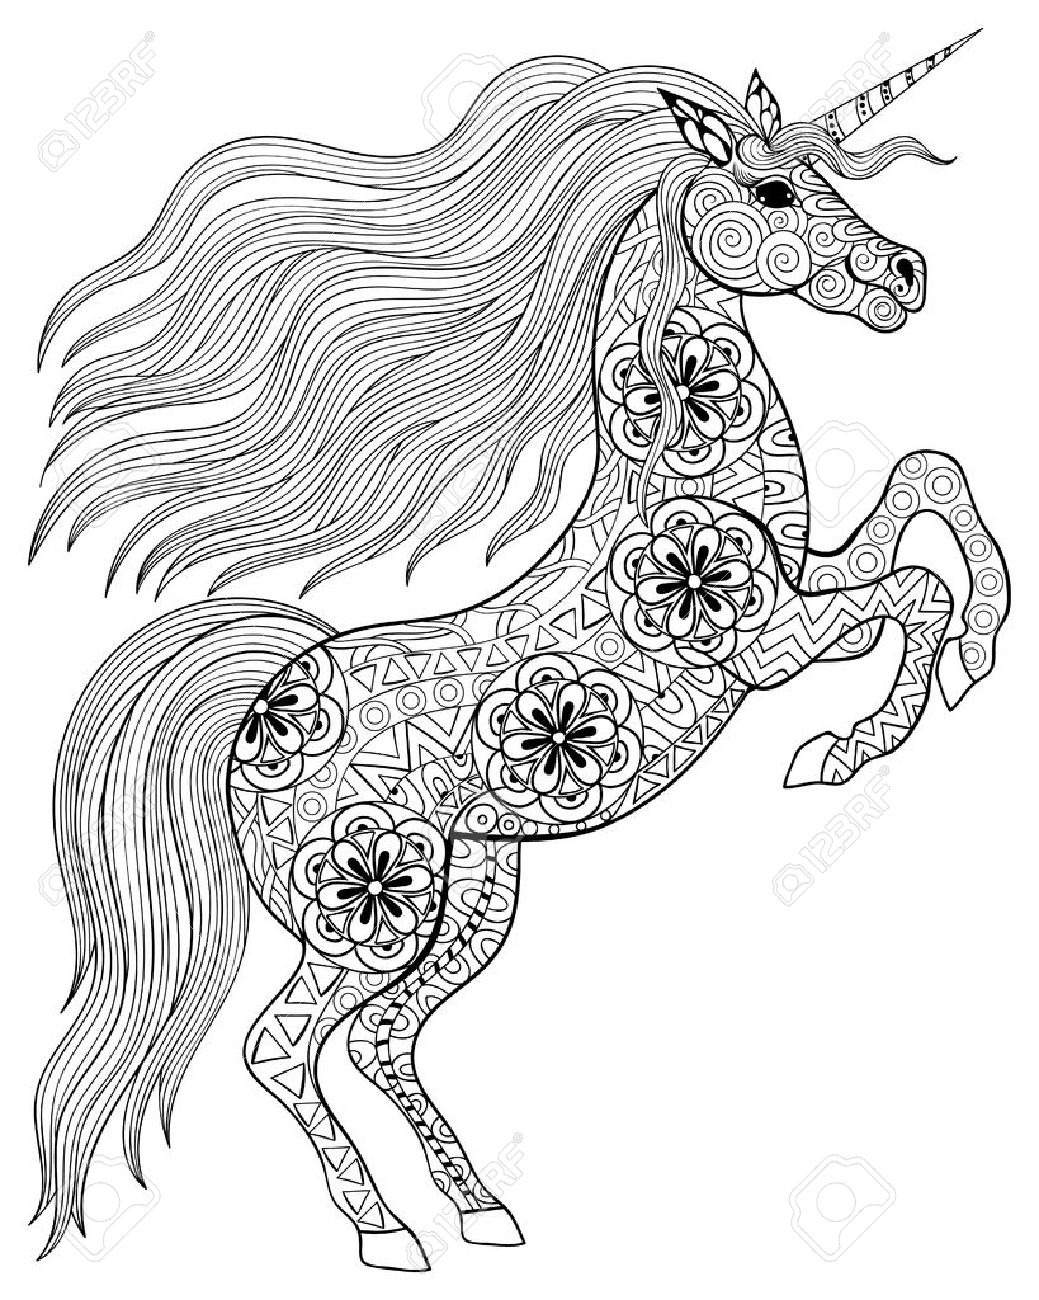 Hand drawn magic unicorn for adult anti stress coloring page with high details isolated on white